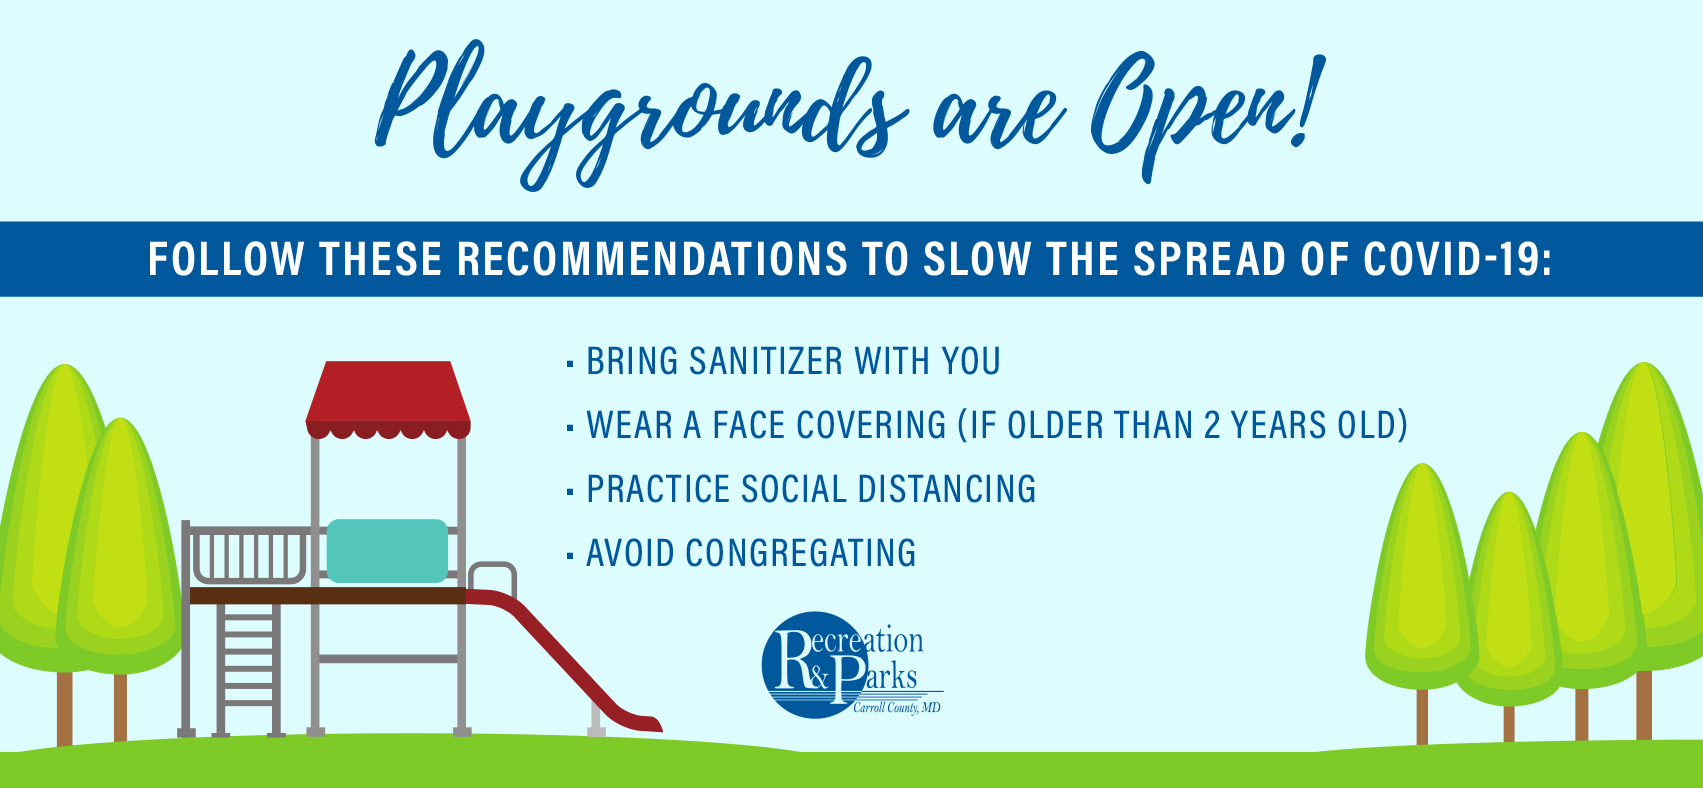 Playgrounds are Open! Slow the spread recommendations